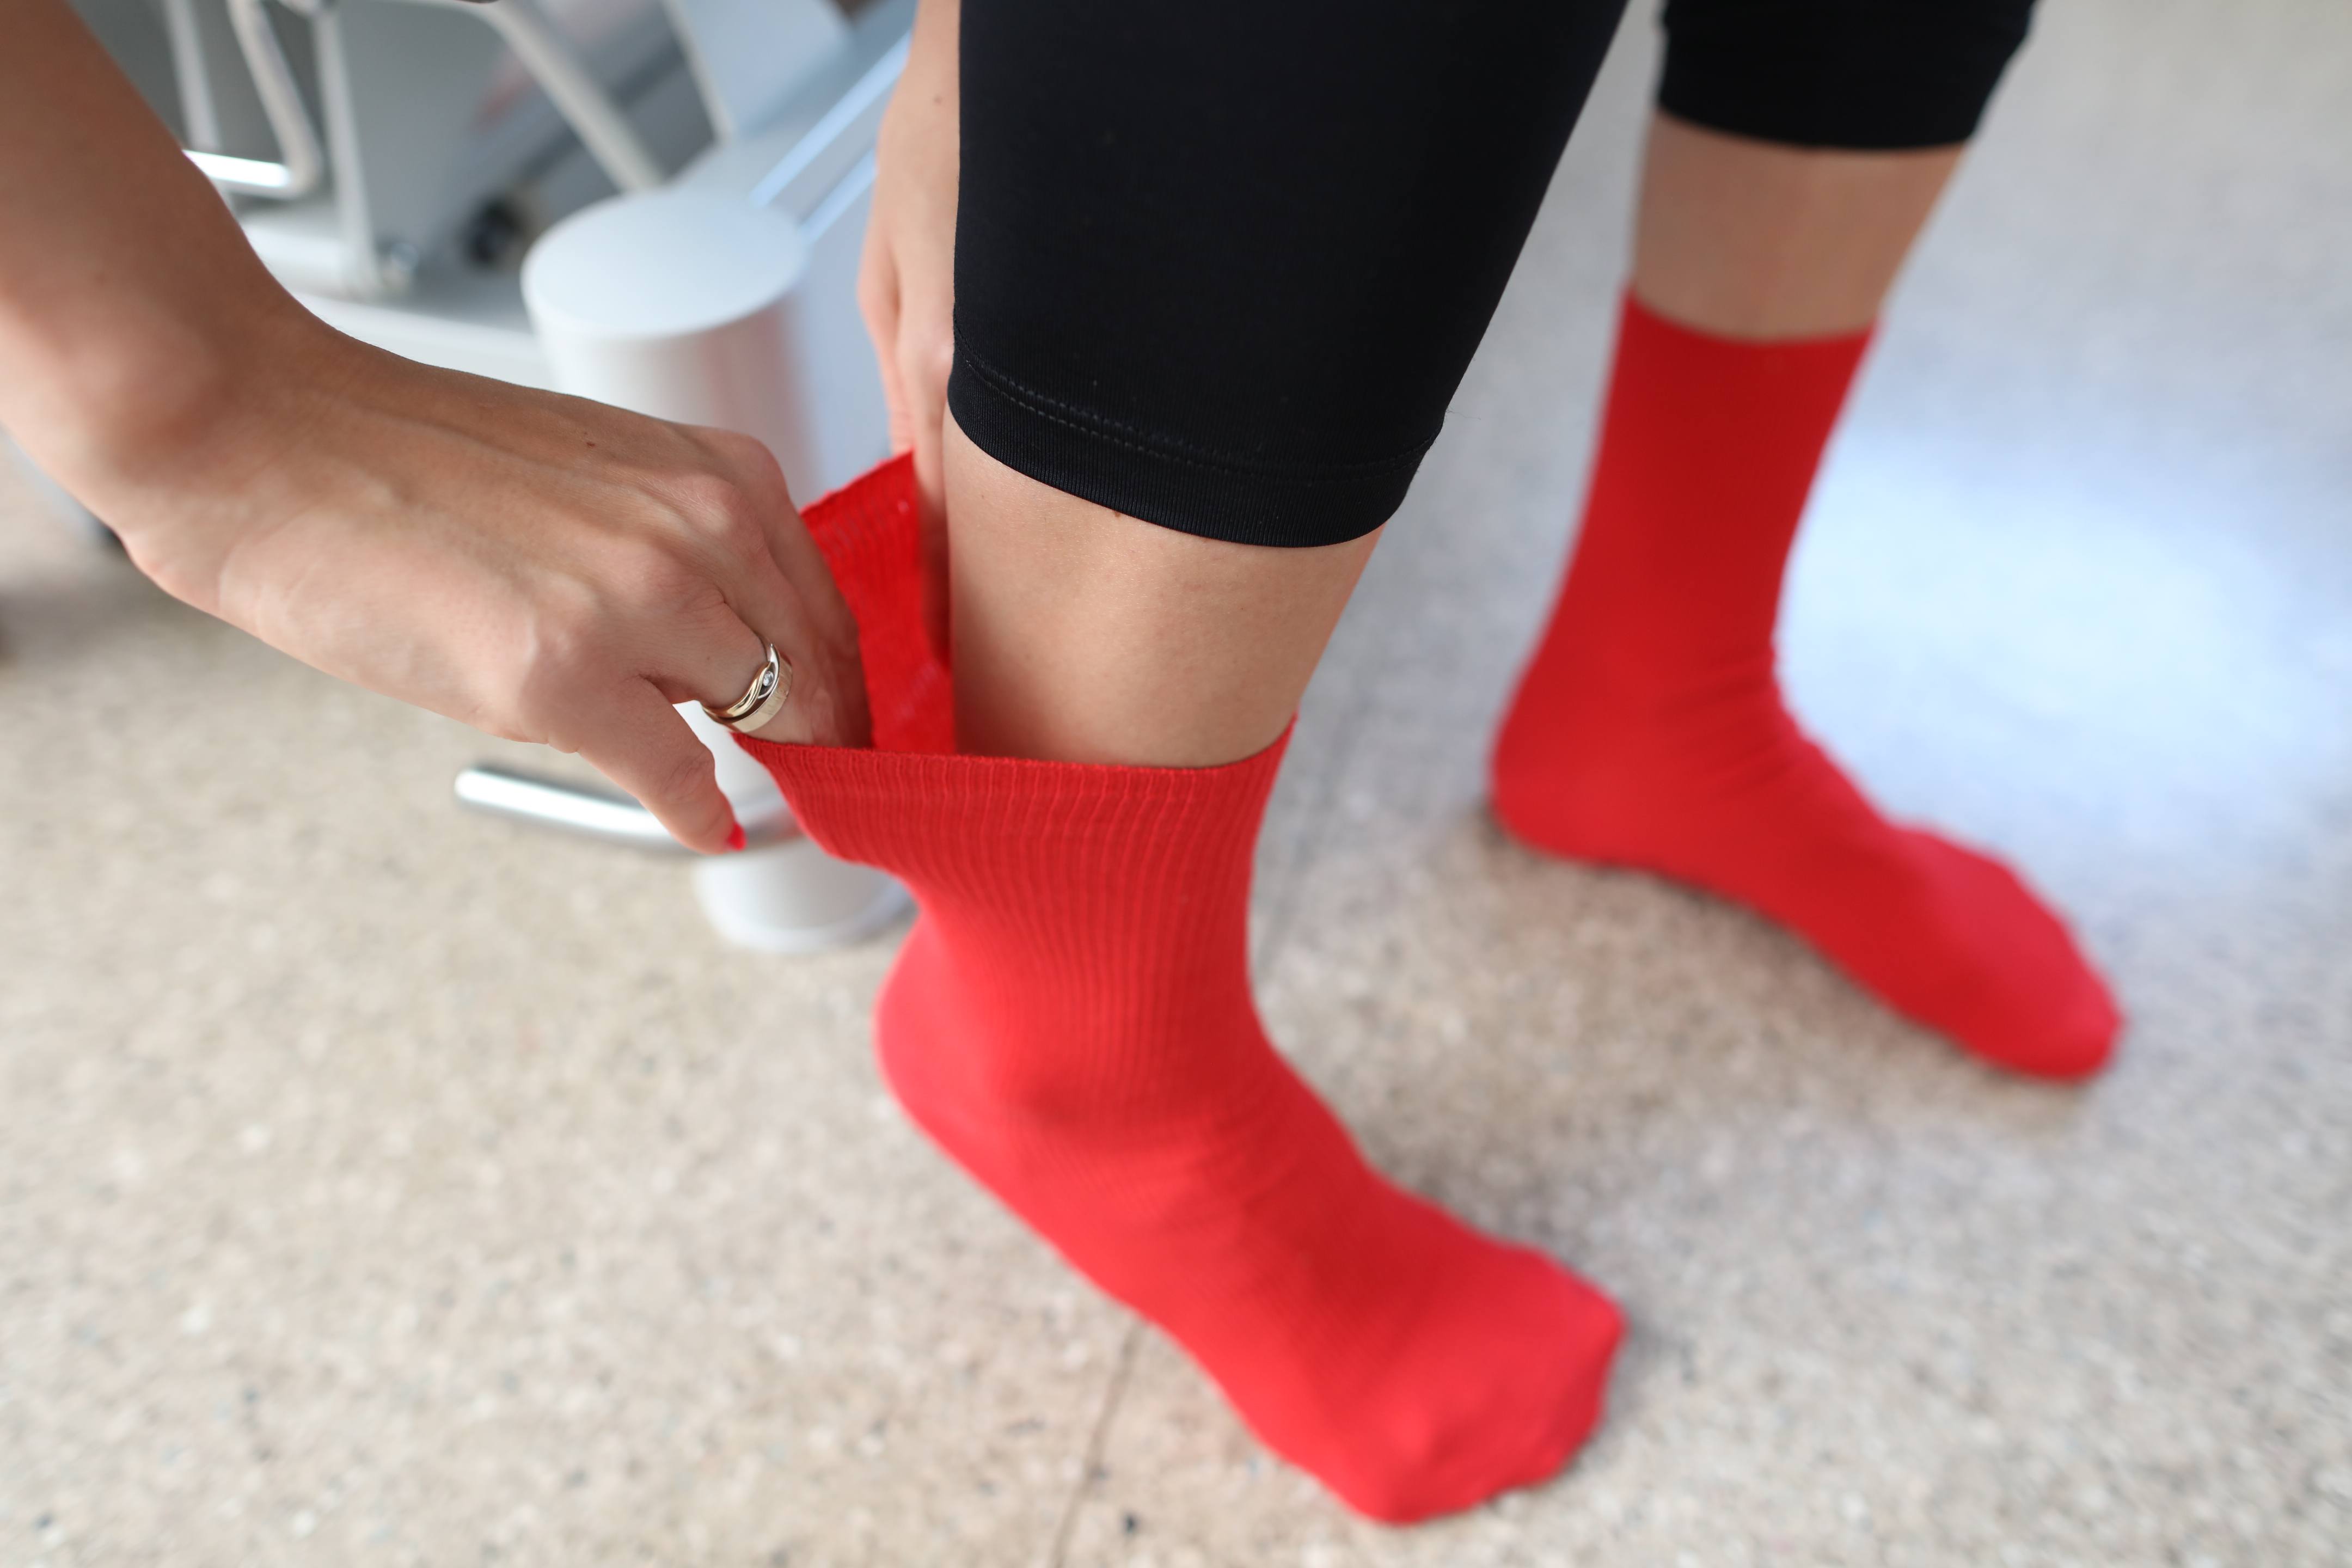 Best socks for diabetics – red non-binding socks without a welt.